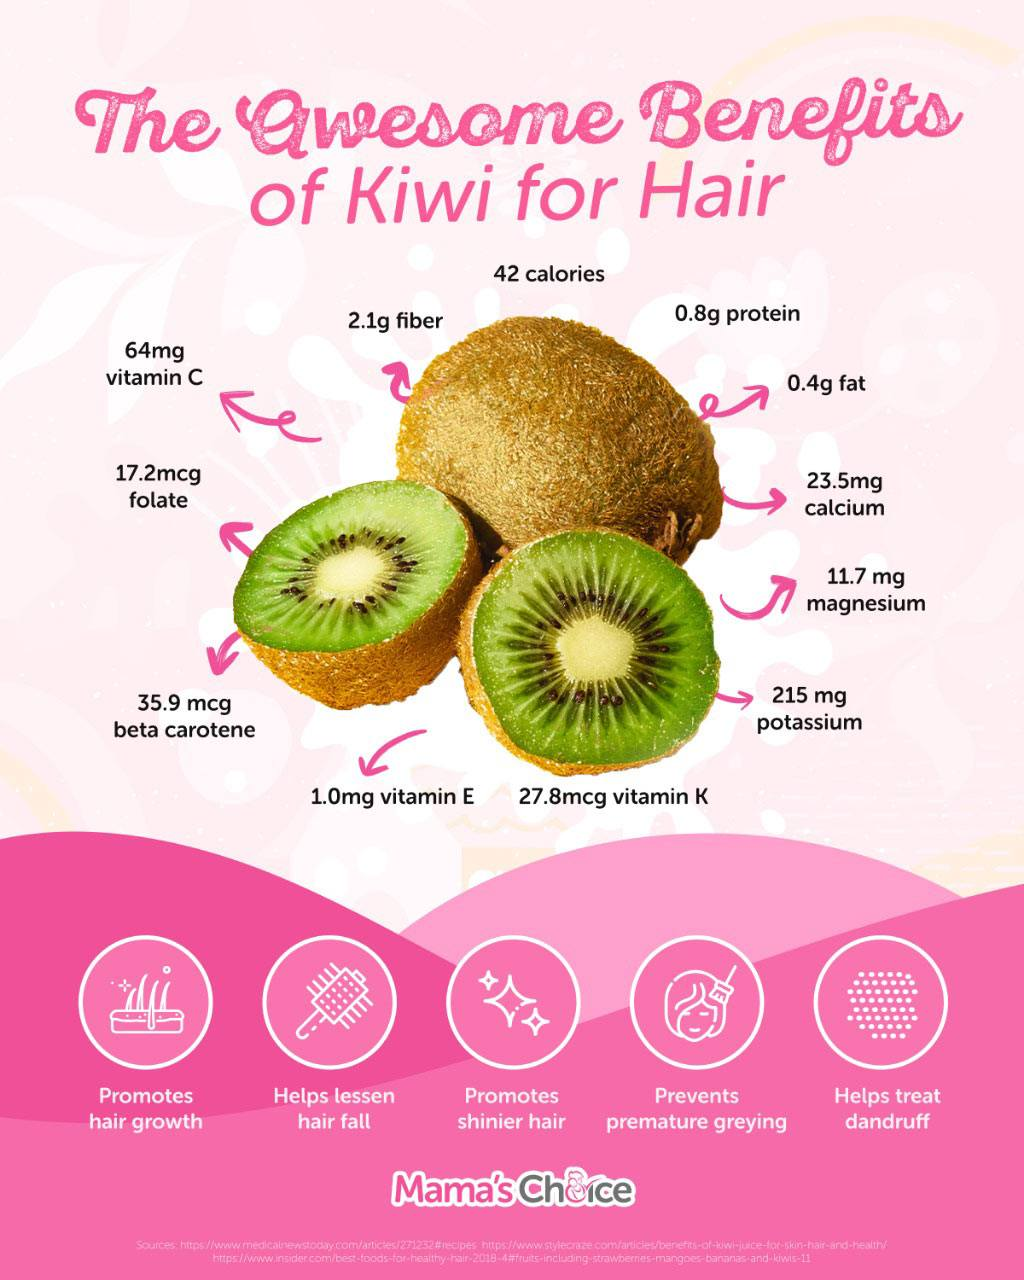 Benefits of kiwi for hair infographic